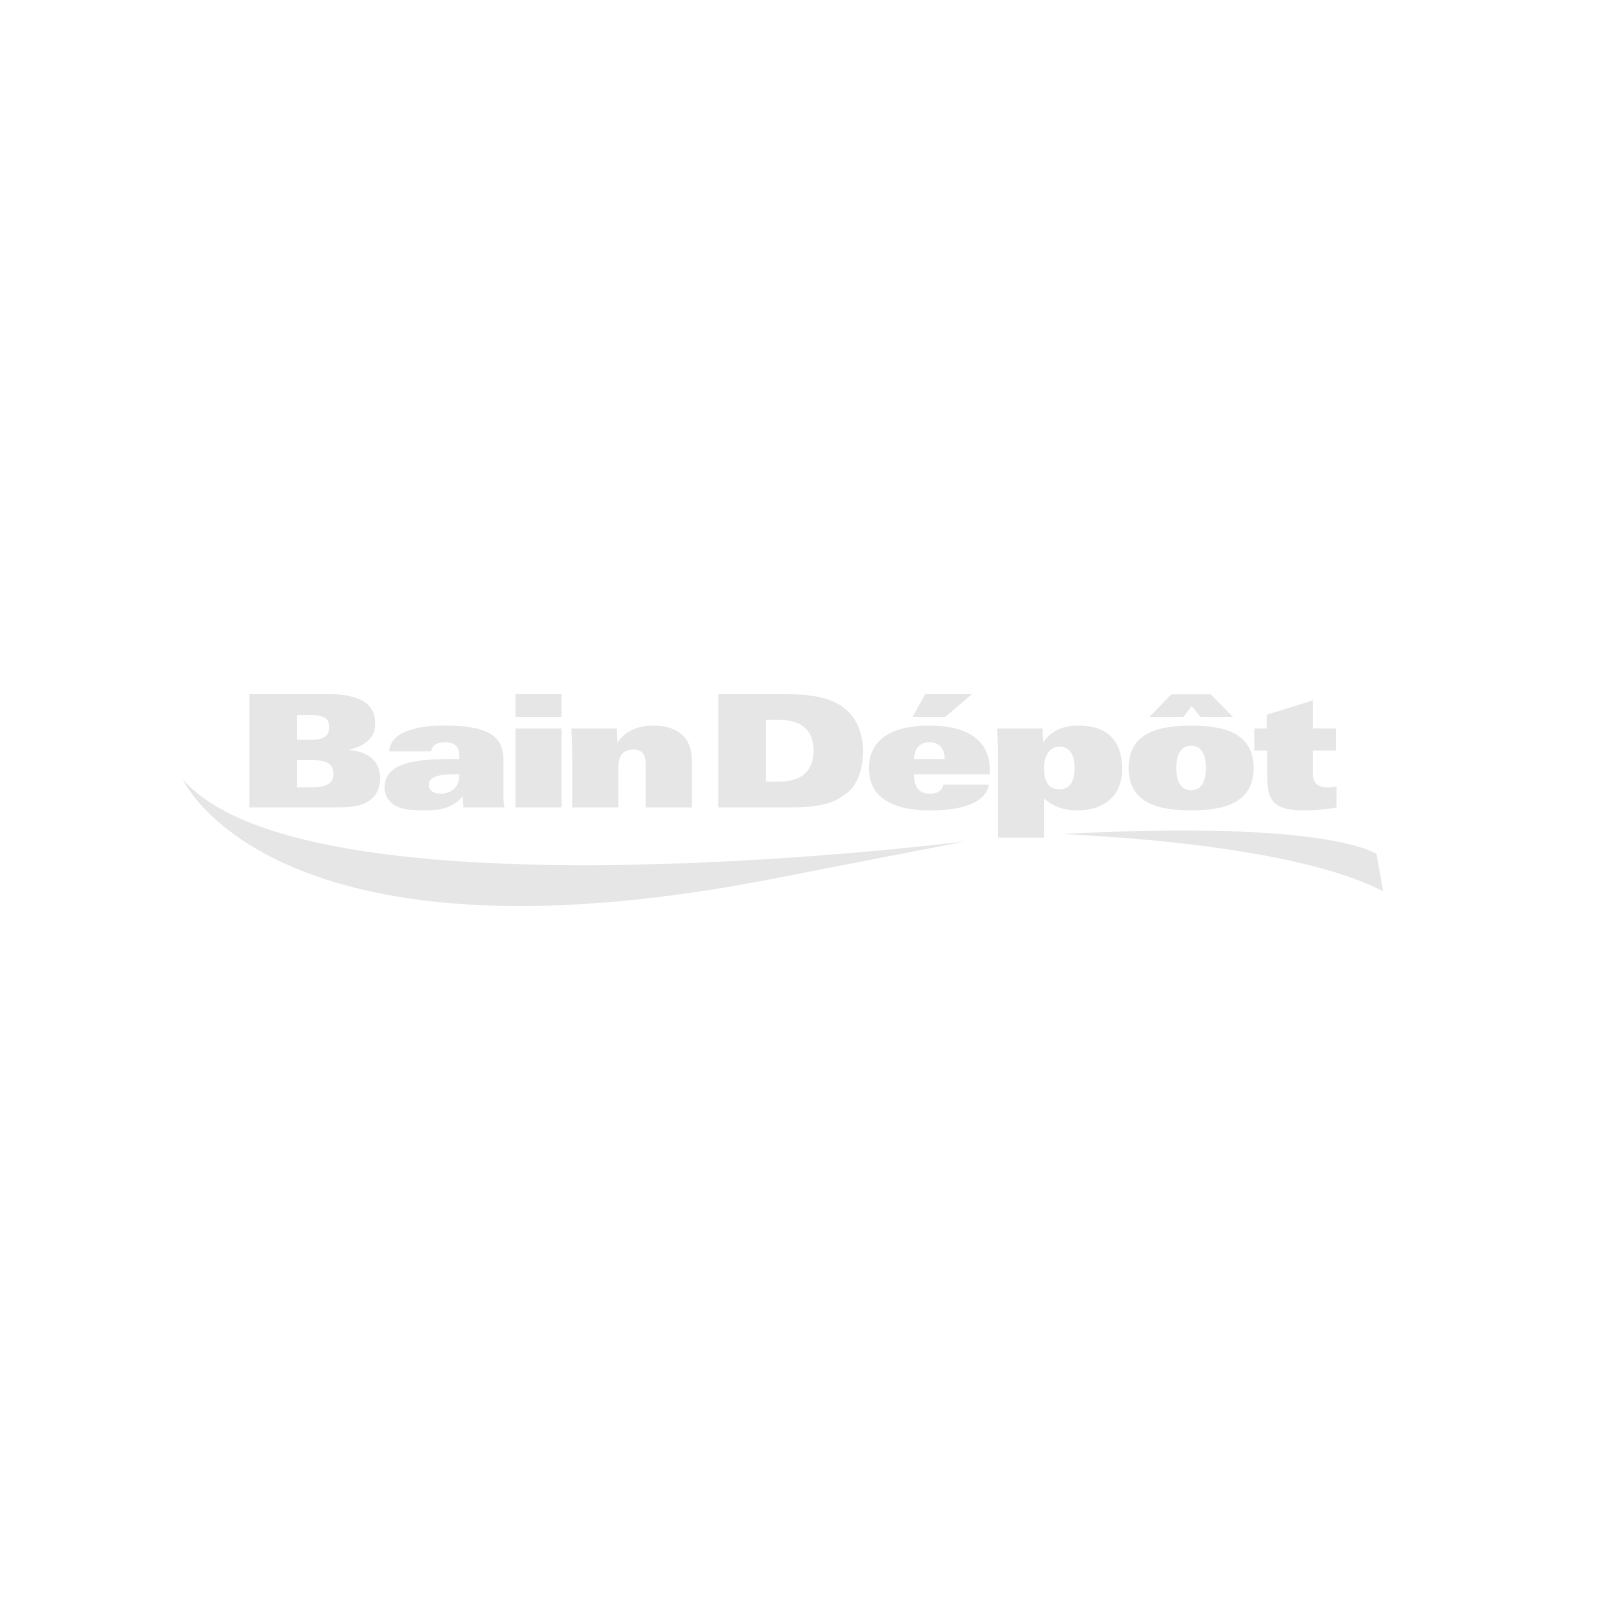 One-piece high efficiency toilet PARDI